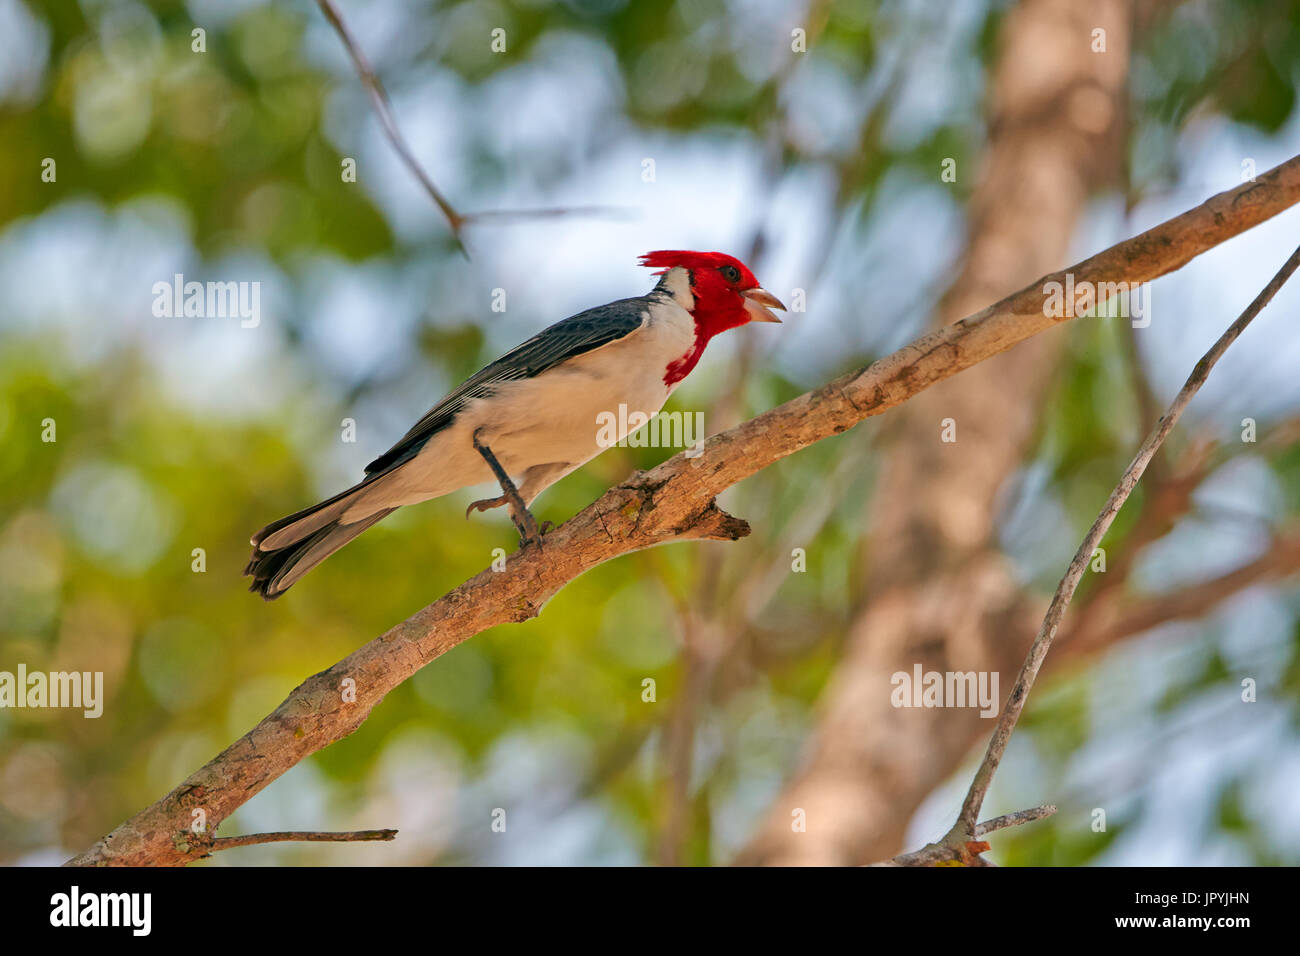 Red-Crested Cardinal on a branch - Brazil Pantanal - Stock Image